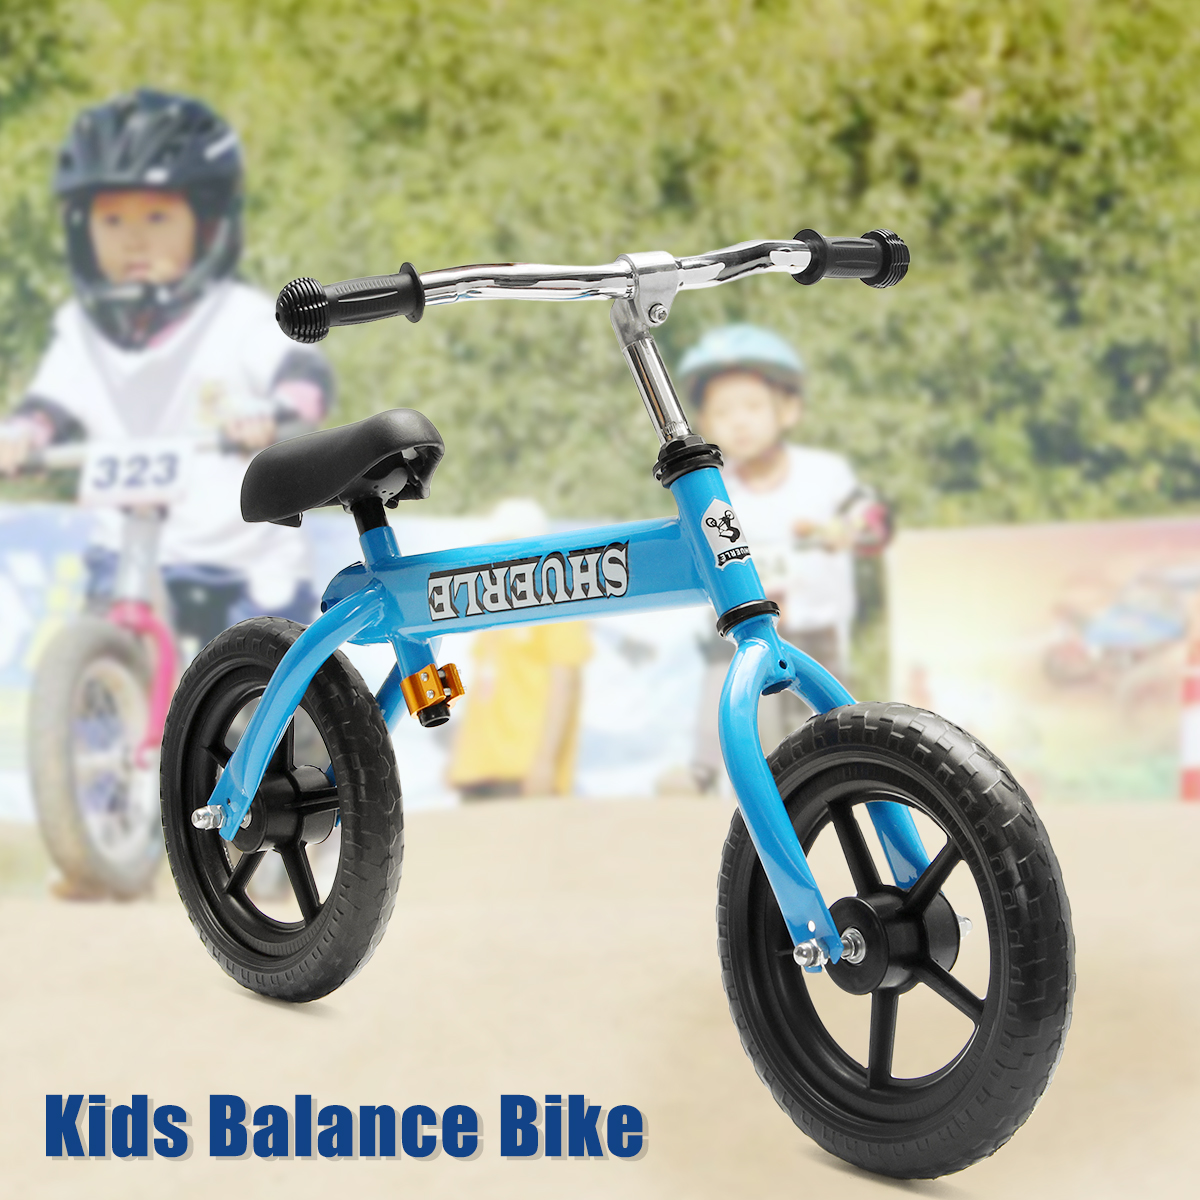 12 inch Child Balance Bike Scooter Baby Walker Scooter 3-6 Years Old Baby No Foot Pedal Kids Riding Toys Children Driving Bike factory outlet 10inch baby balance bike with adjust handle no pedal kids bike pink baby balance bike with asjust seat